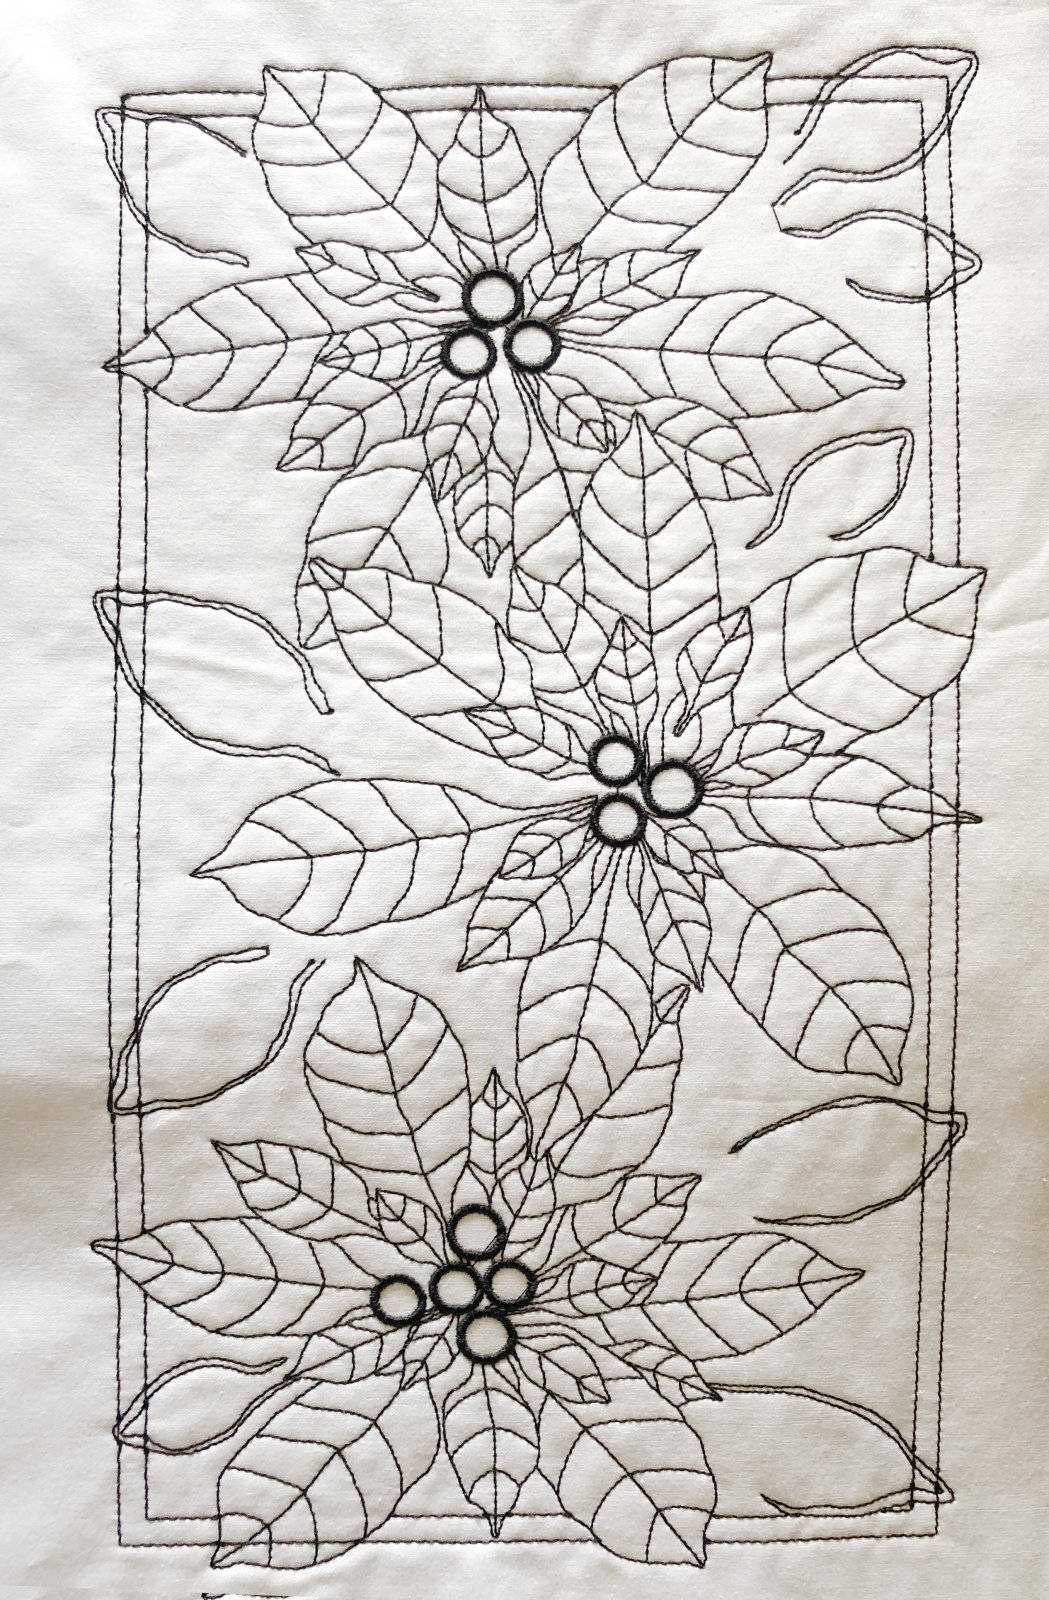 Pre-Stitched Art Applique blocks for coloring-Poinsettias (QA-14P)